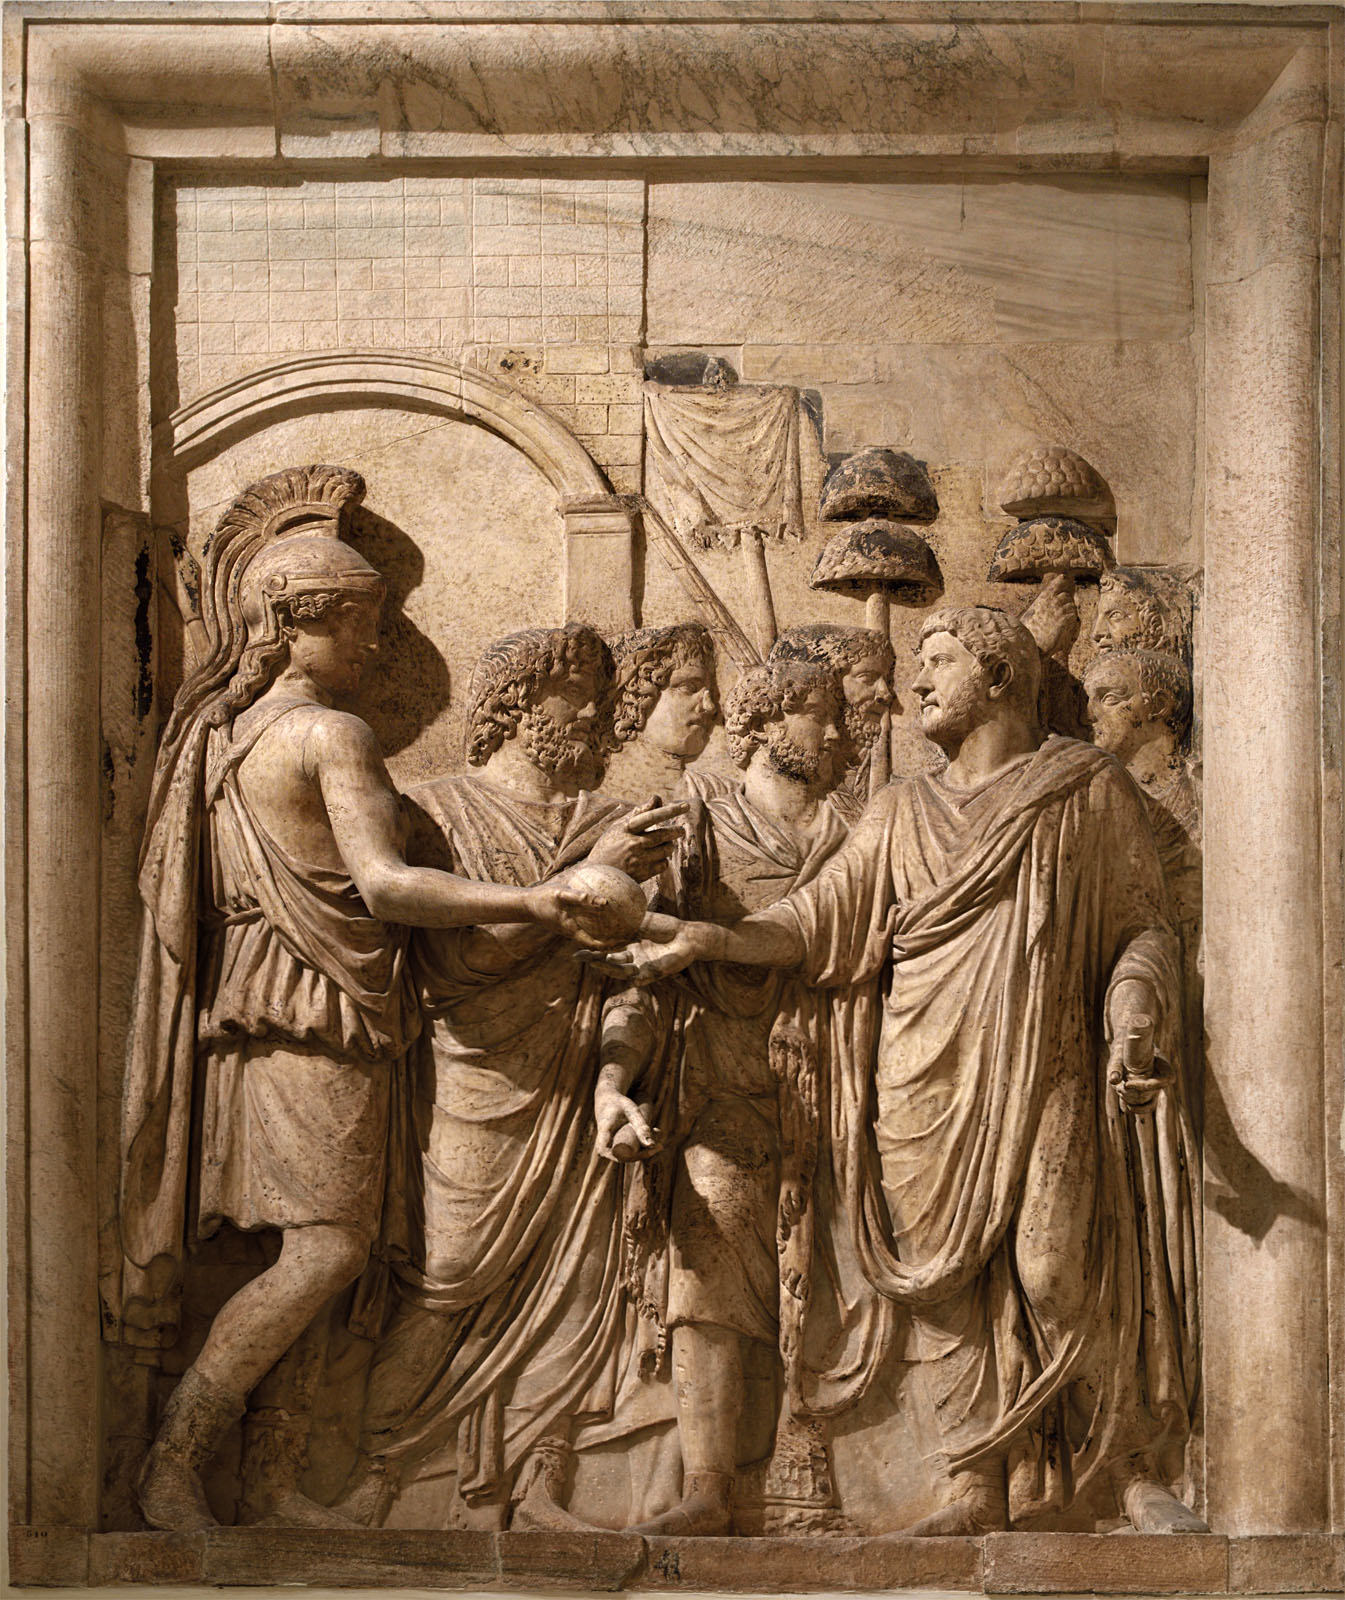 Hadrian's Adventus to Rome. Relief panel from an honorary arch at piazza Sciarra (presumably). Marble. 134—138 CE. Inv. No. MC 810. Rome, Capitoline Museums, Palazzo dei Conservatori, Main staircase